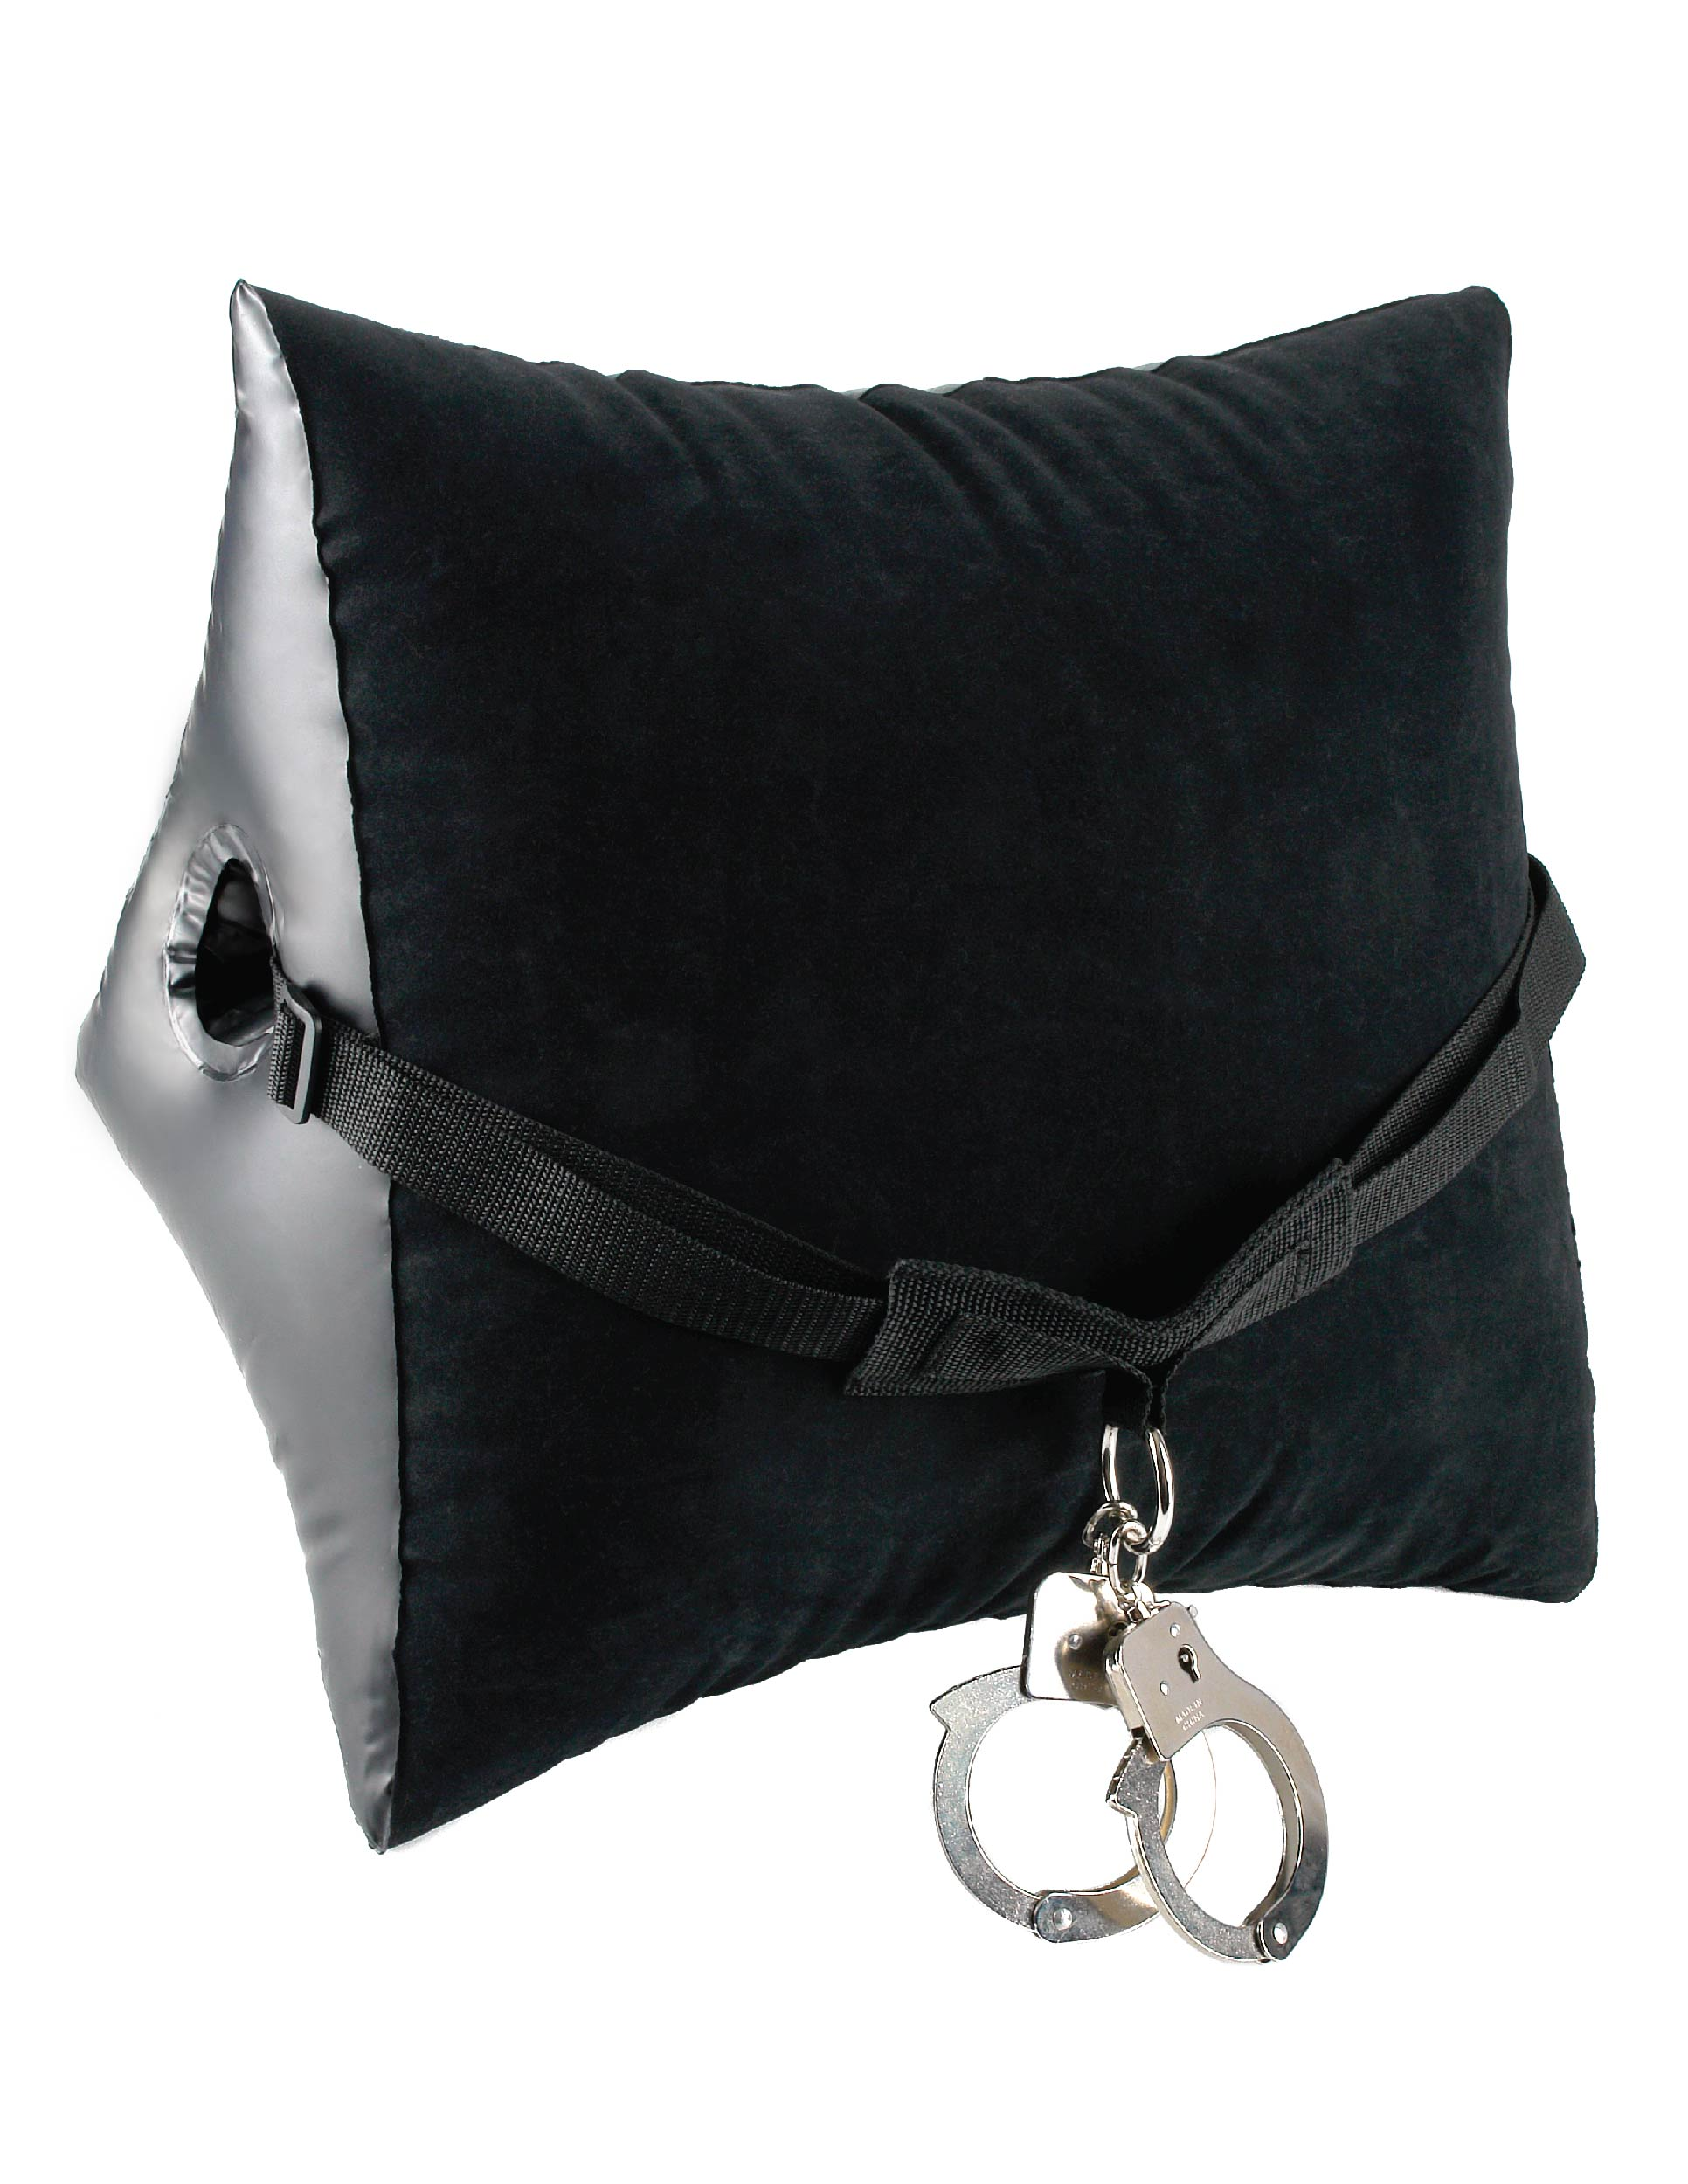 Deluxe Position Pillow & Cuffs